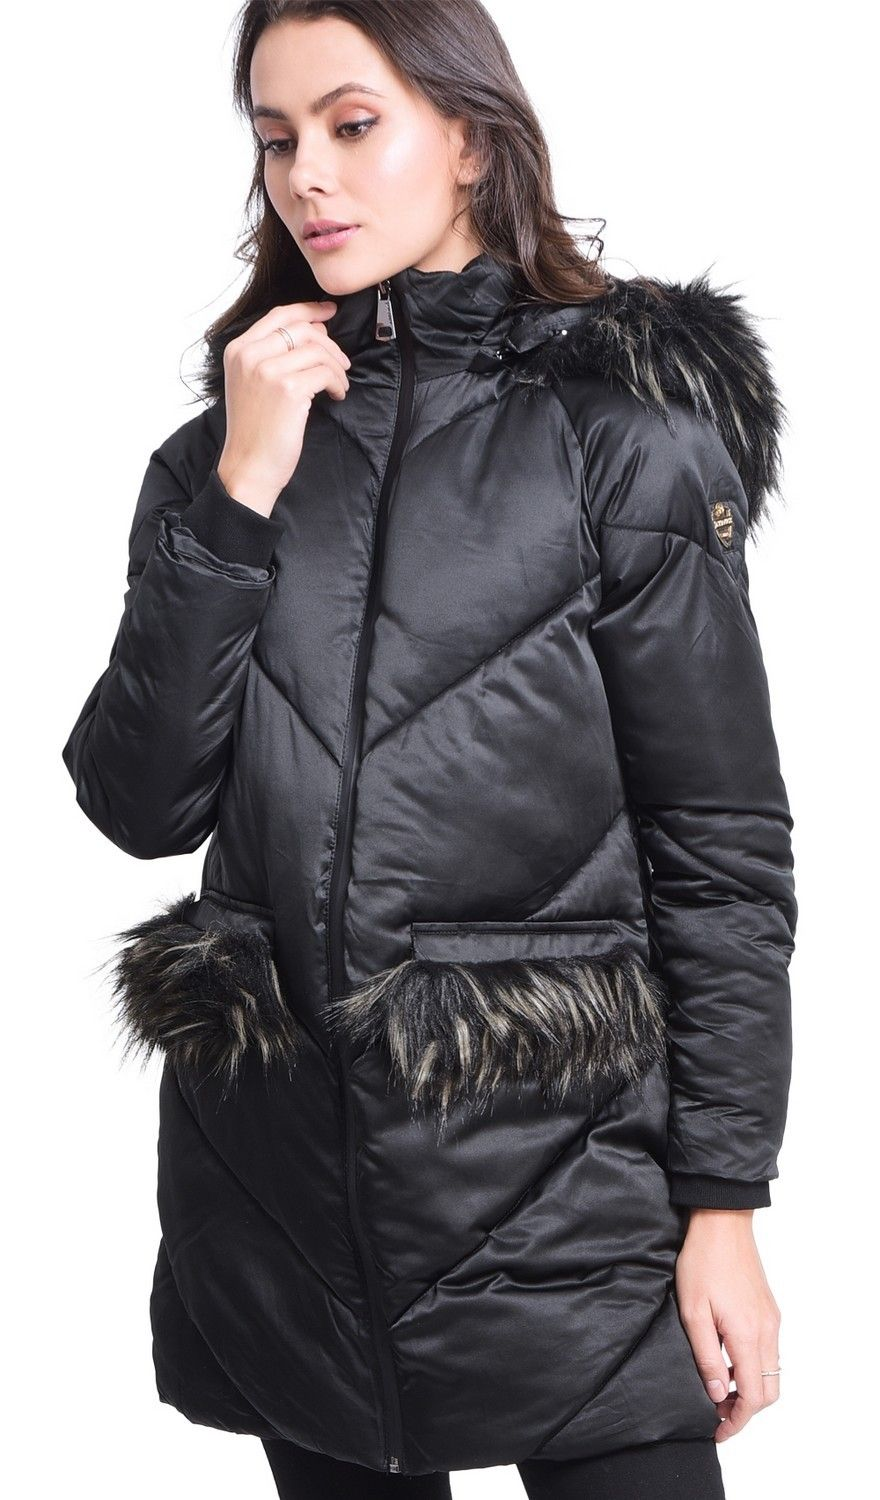 Assuili Long Puffer Jacket with Faux Fur Panel in Black